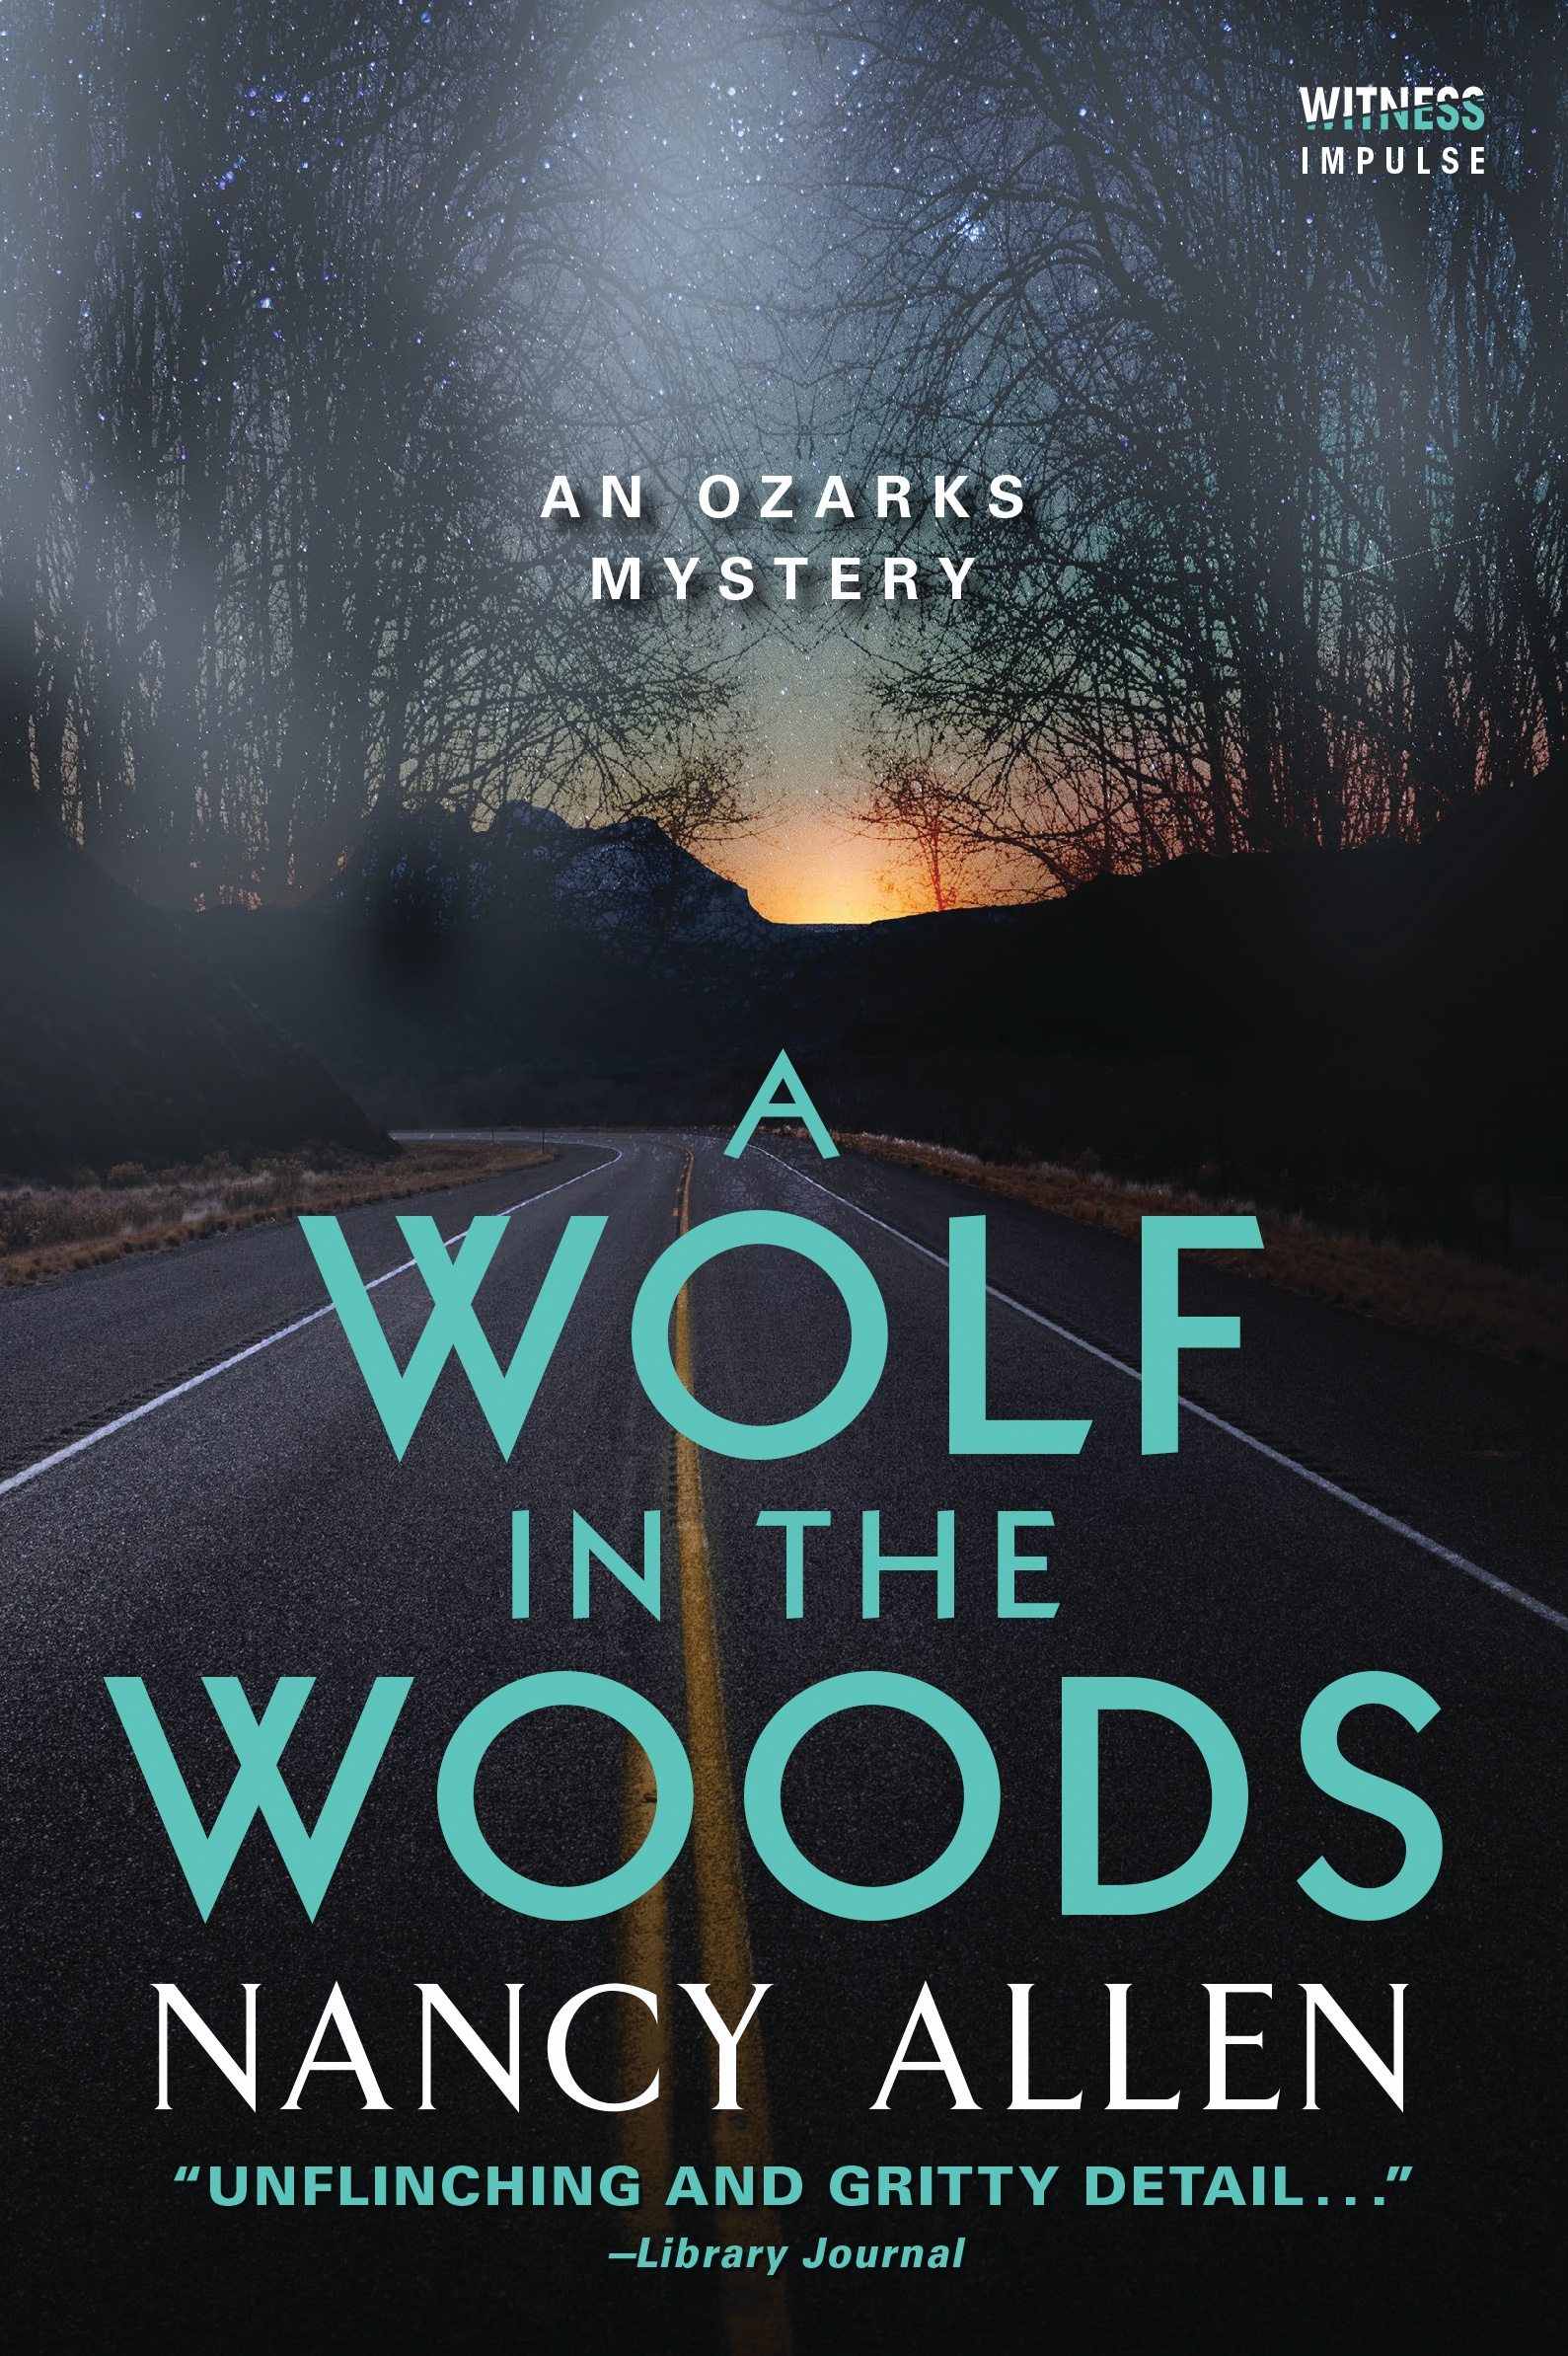 a-wolf-in-the-woods-by-nancy-allen-Eonly-9780062438782-Cover